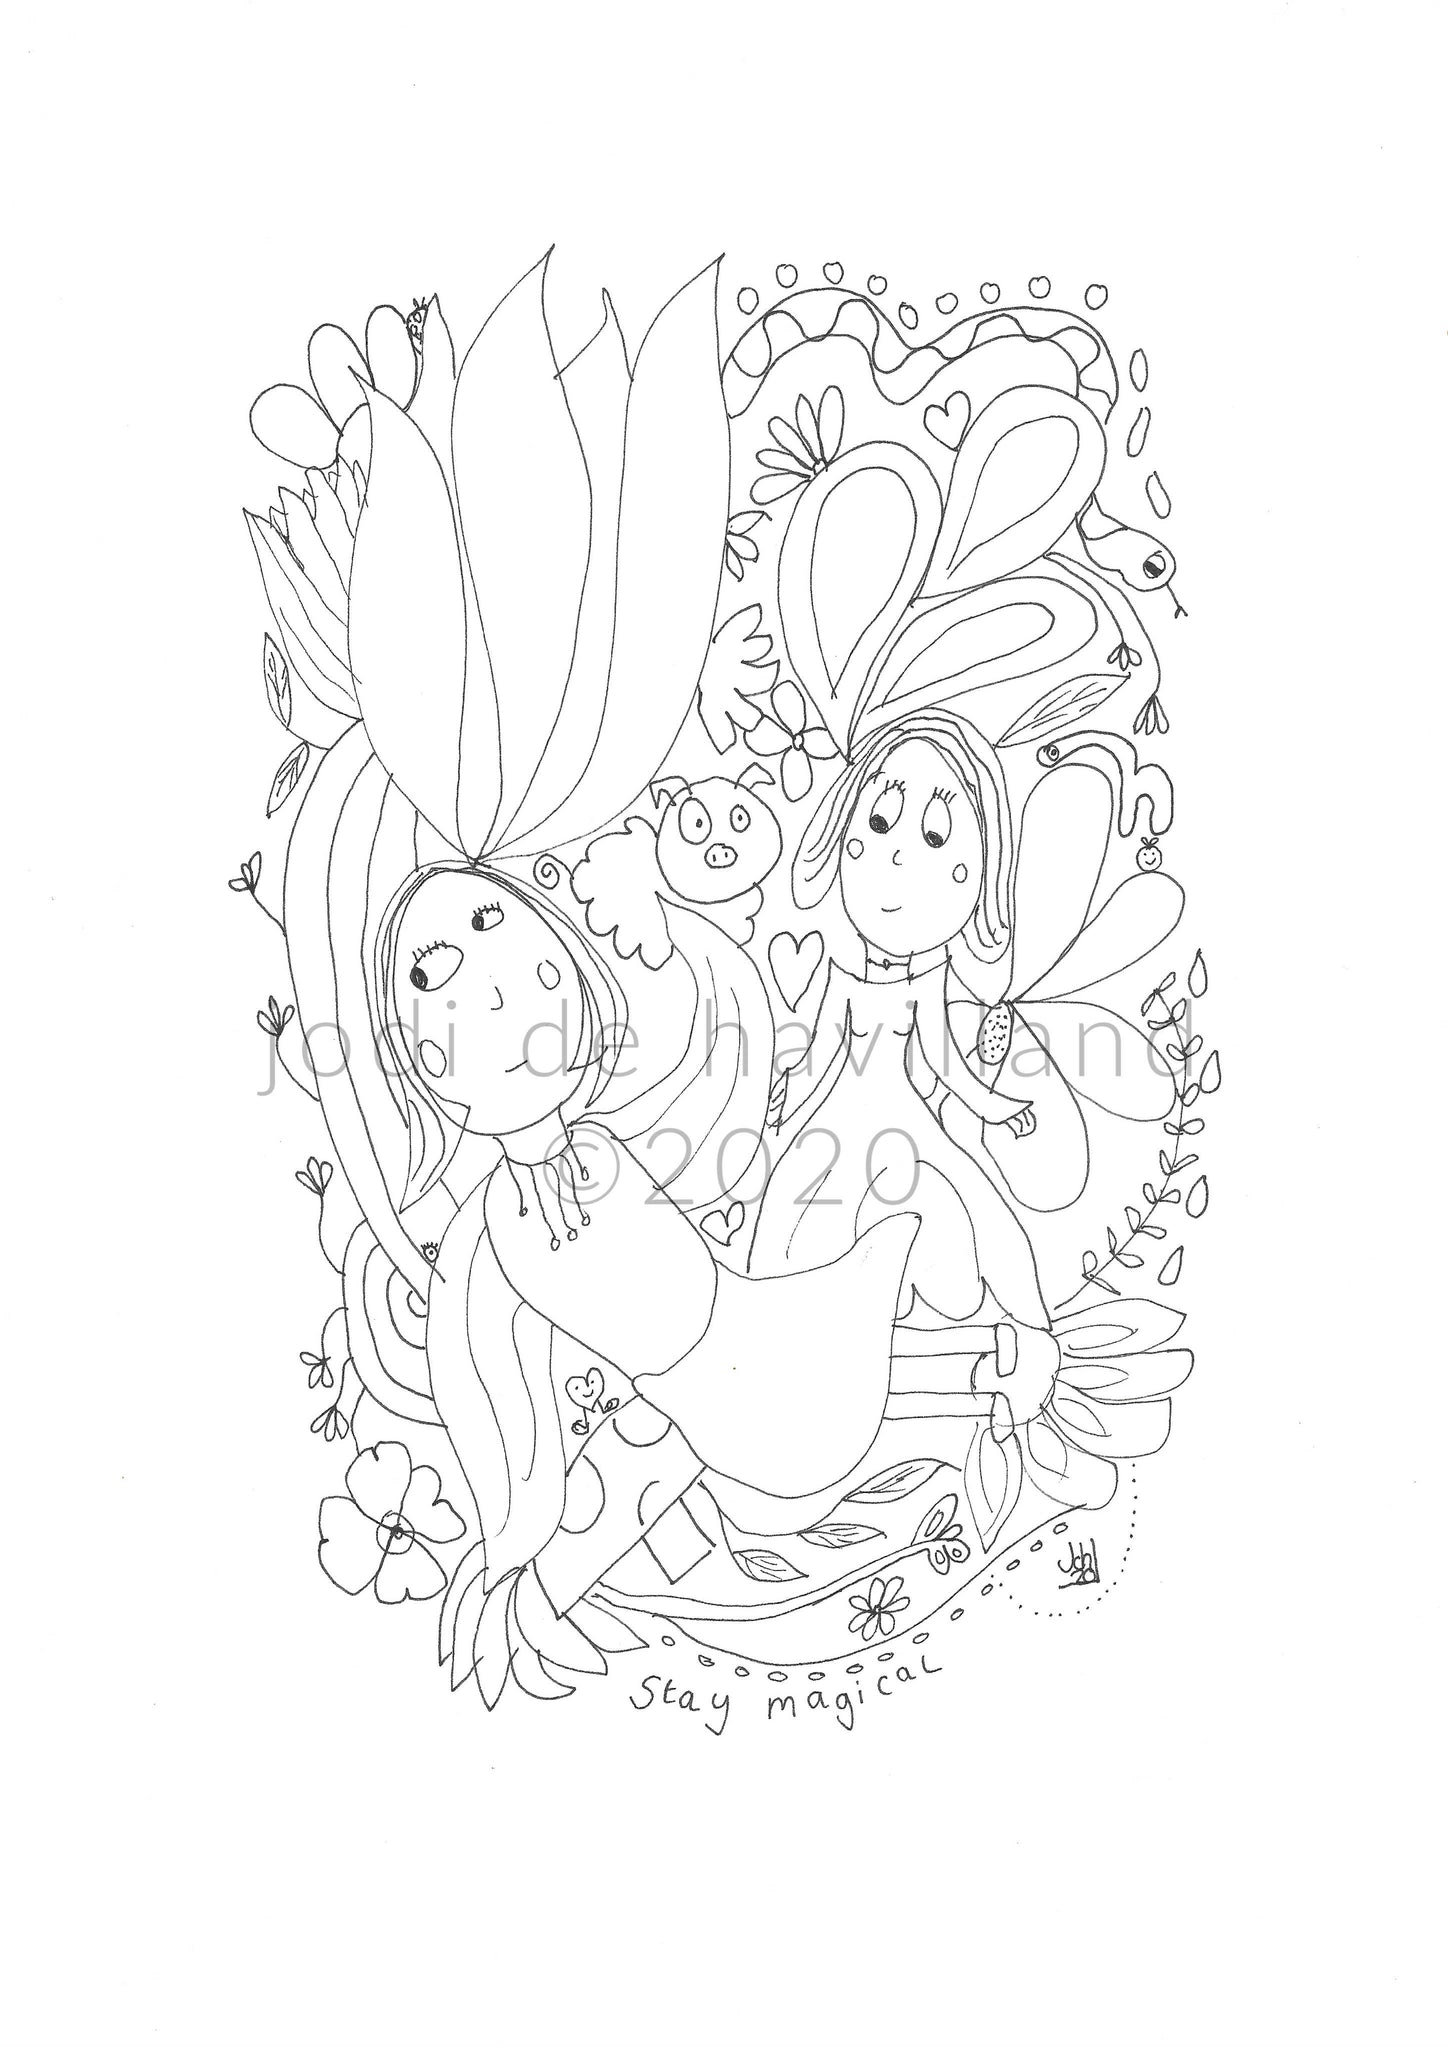 stay magical  - printable colouring page